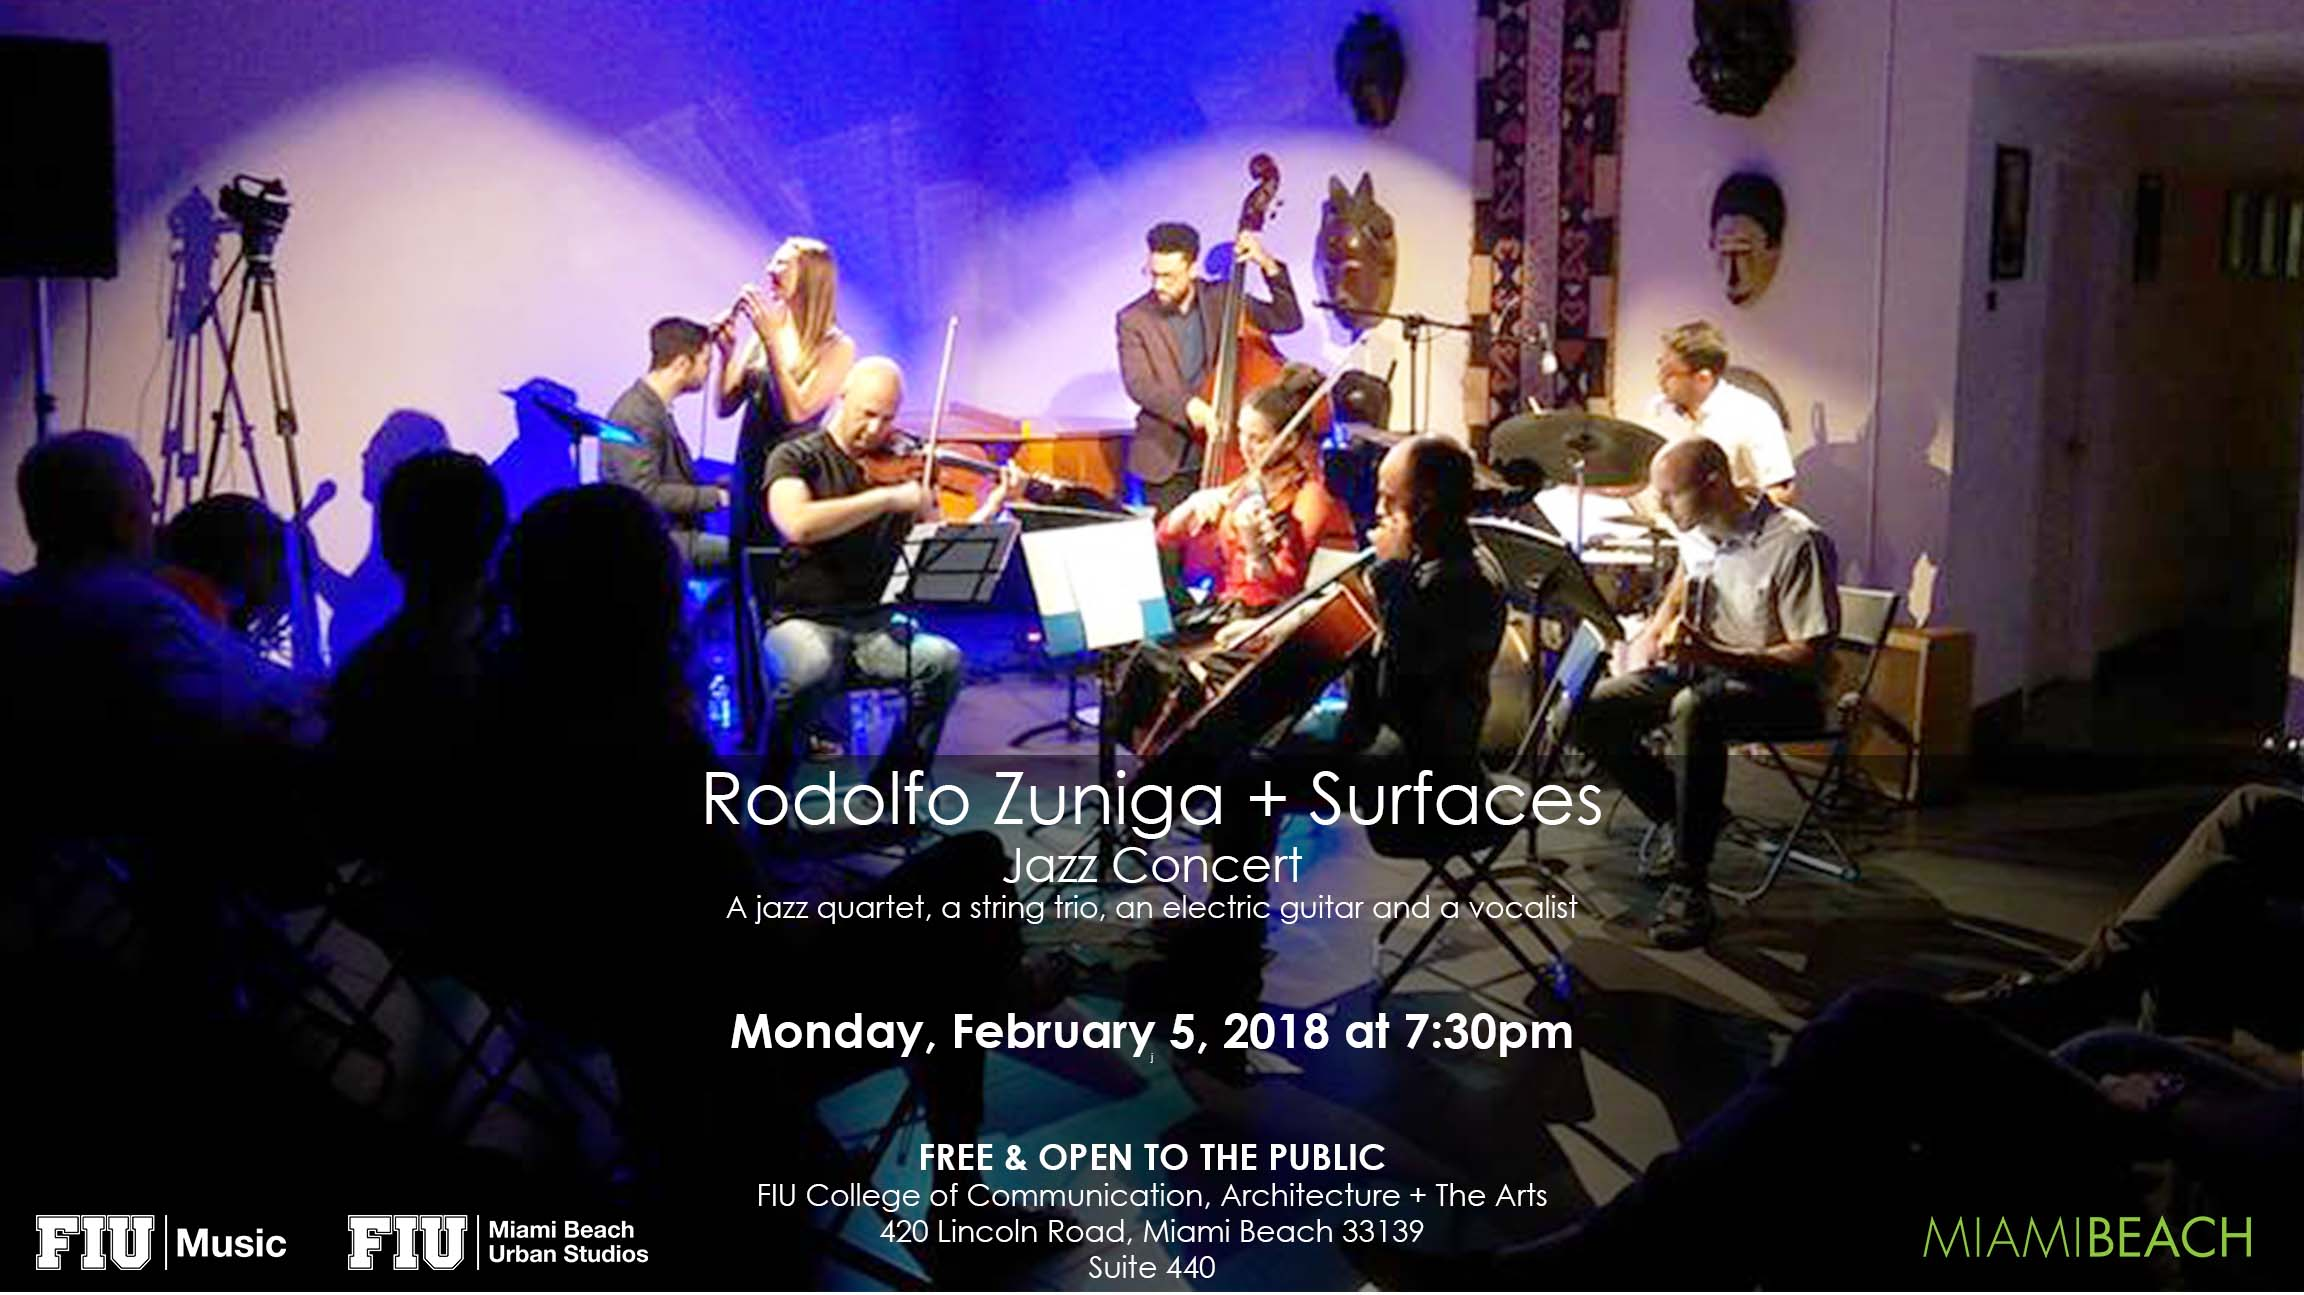 Jazz Concert Rodolfo Zuniga Surfaces